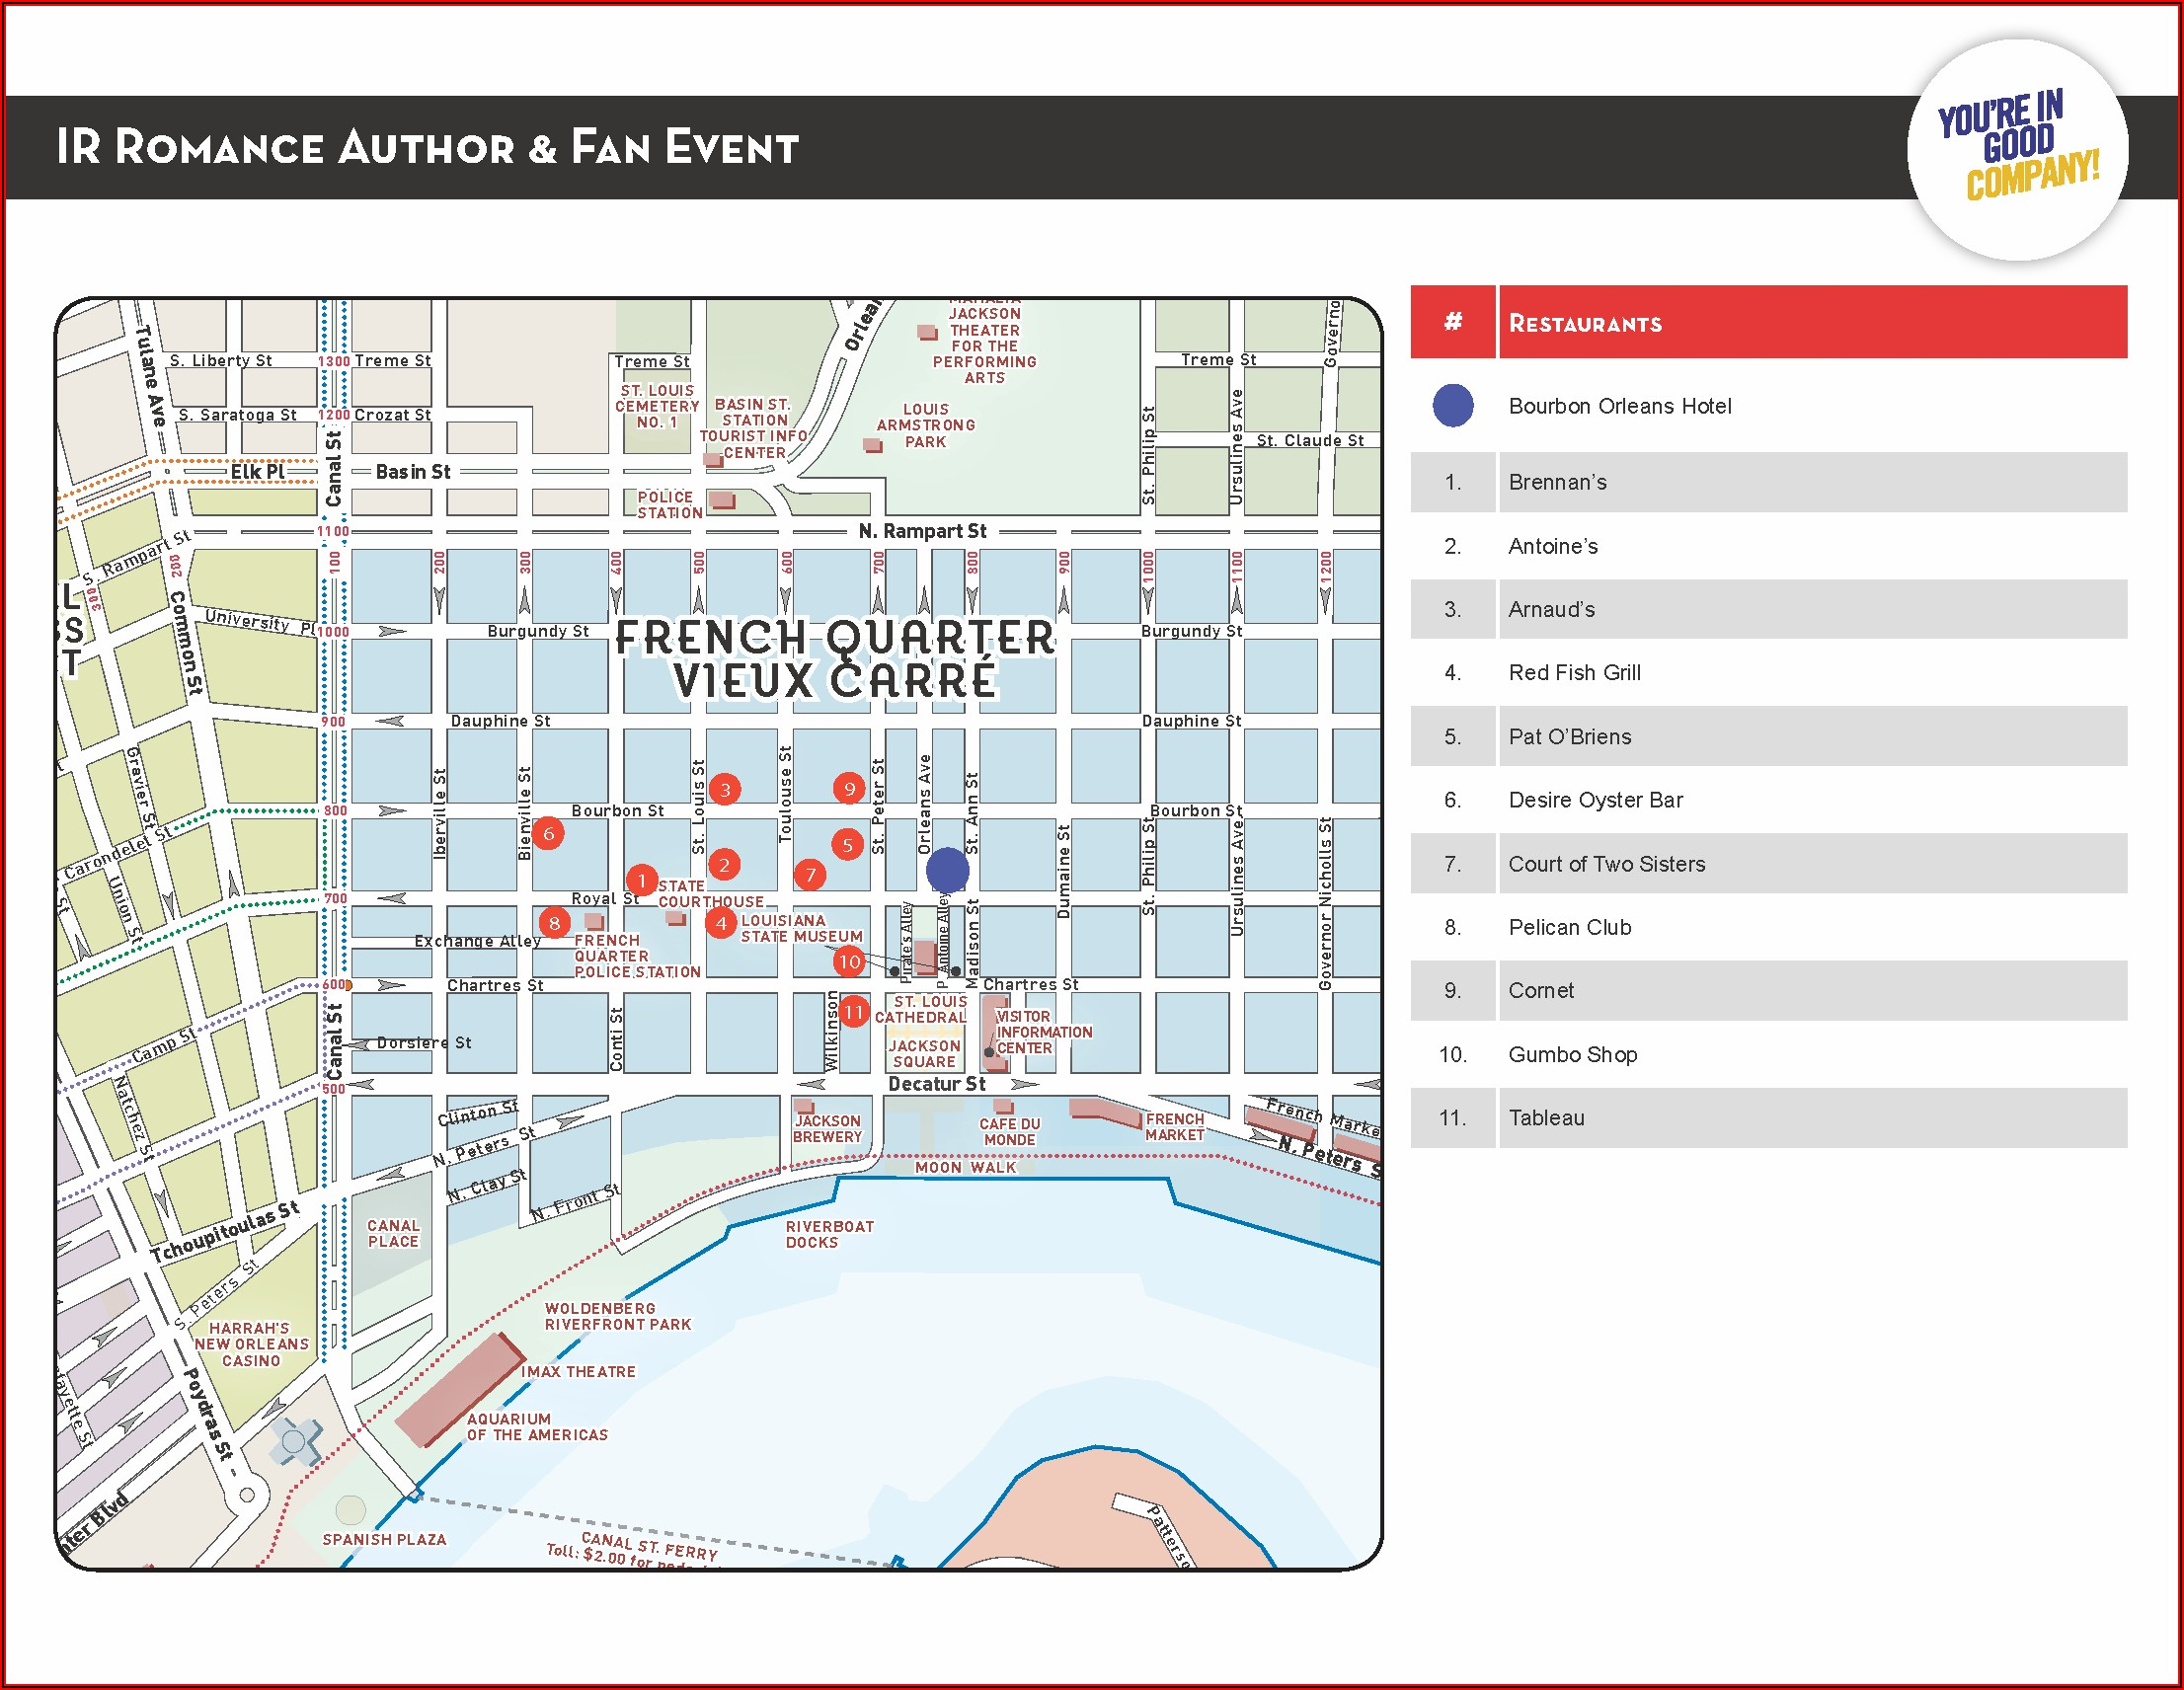 Map Of French Quarter Hotels And Restaurants